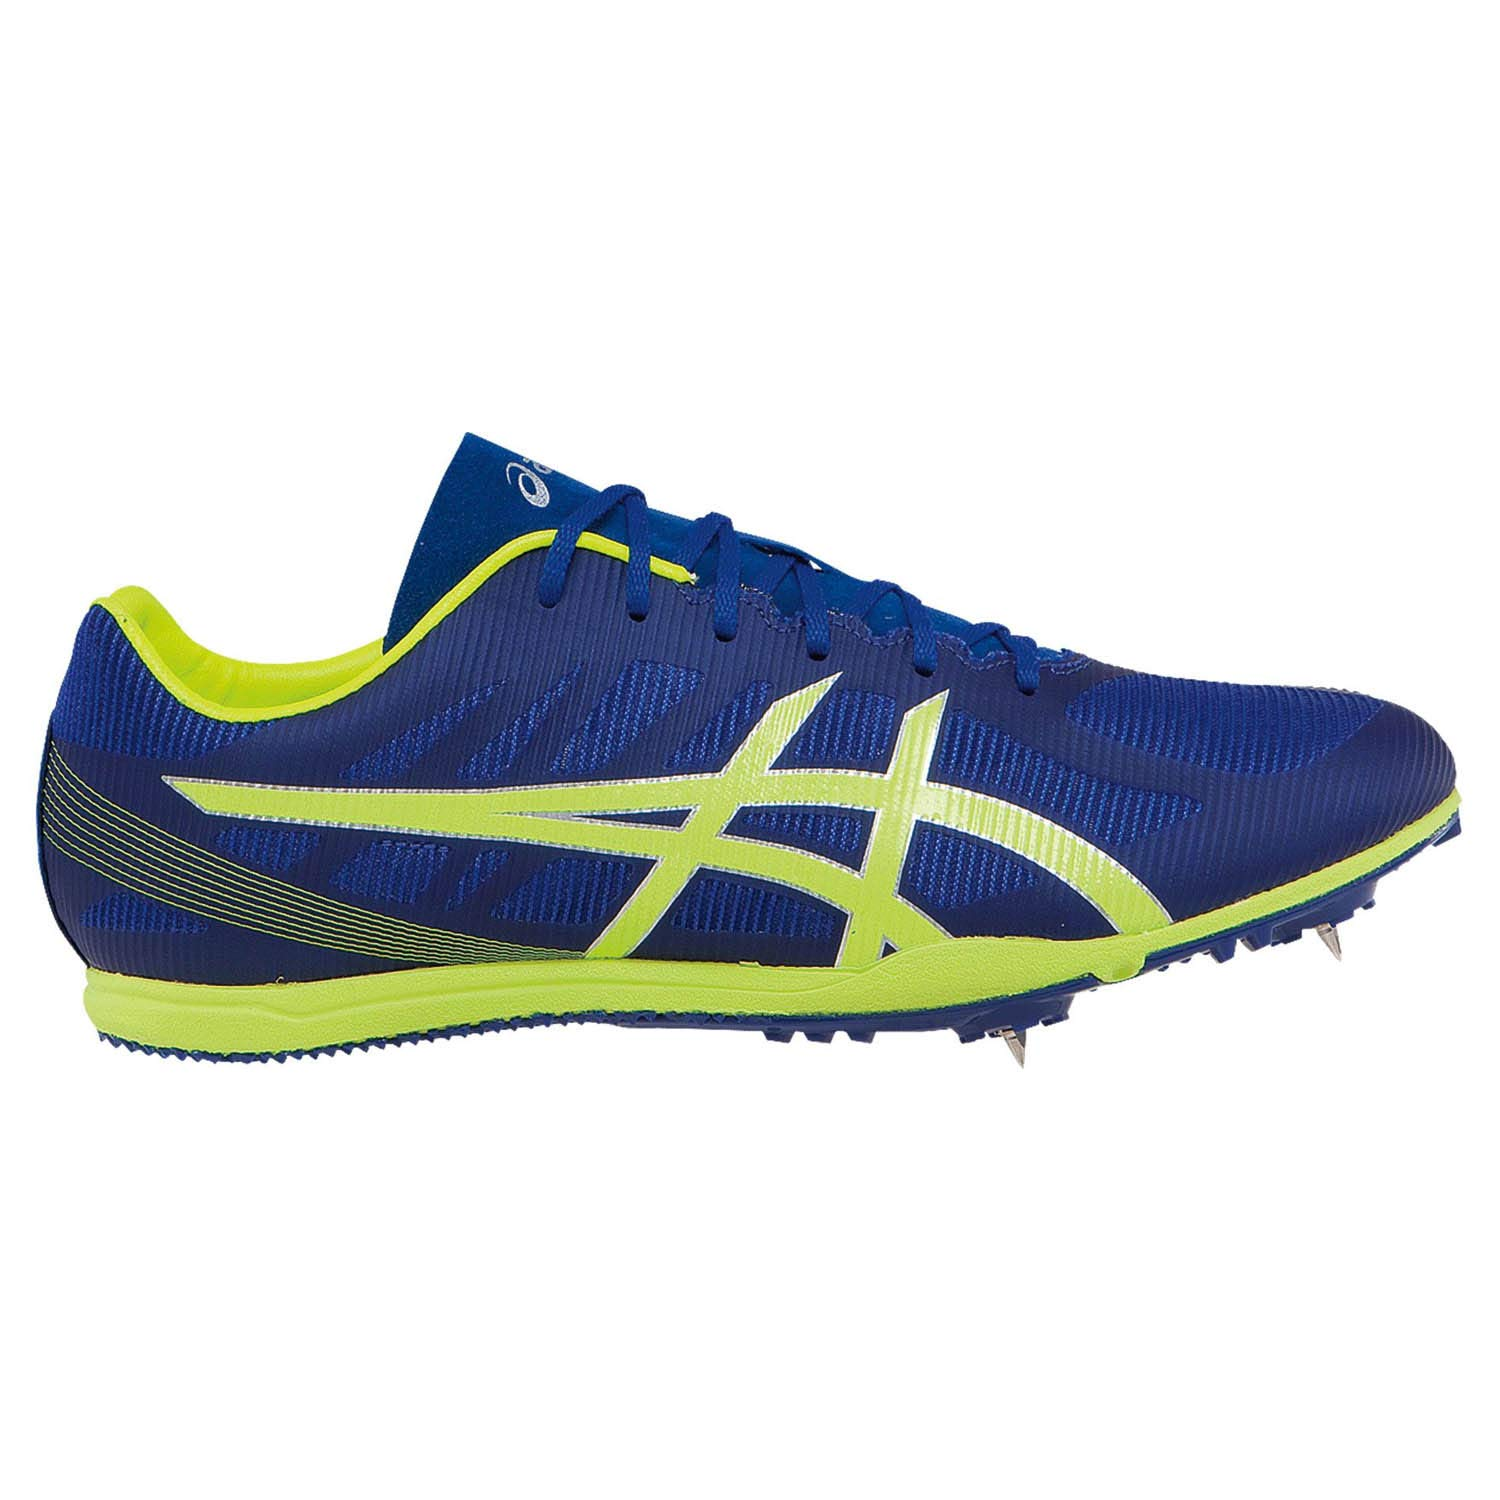 ASICS Men's Heat Chaser Track And Field Shoe,Deep Blue/Flash Yellow,9.5 M US by ASICS